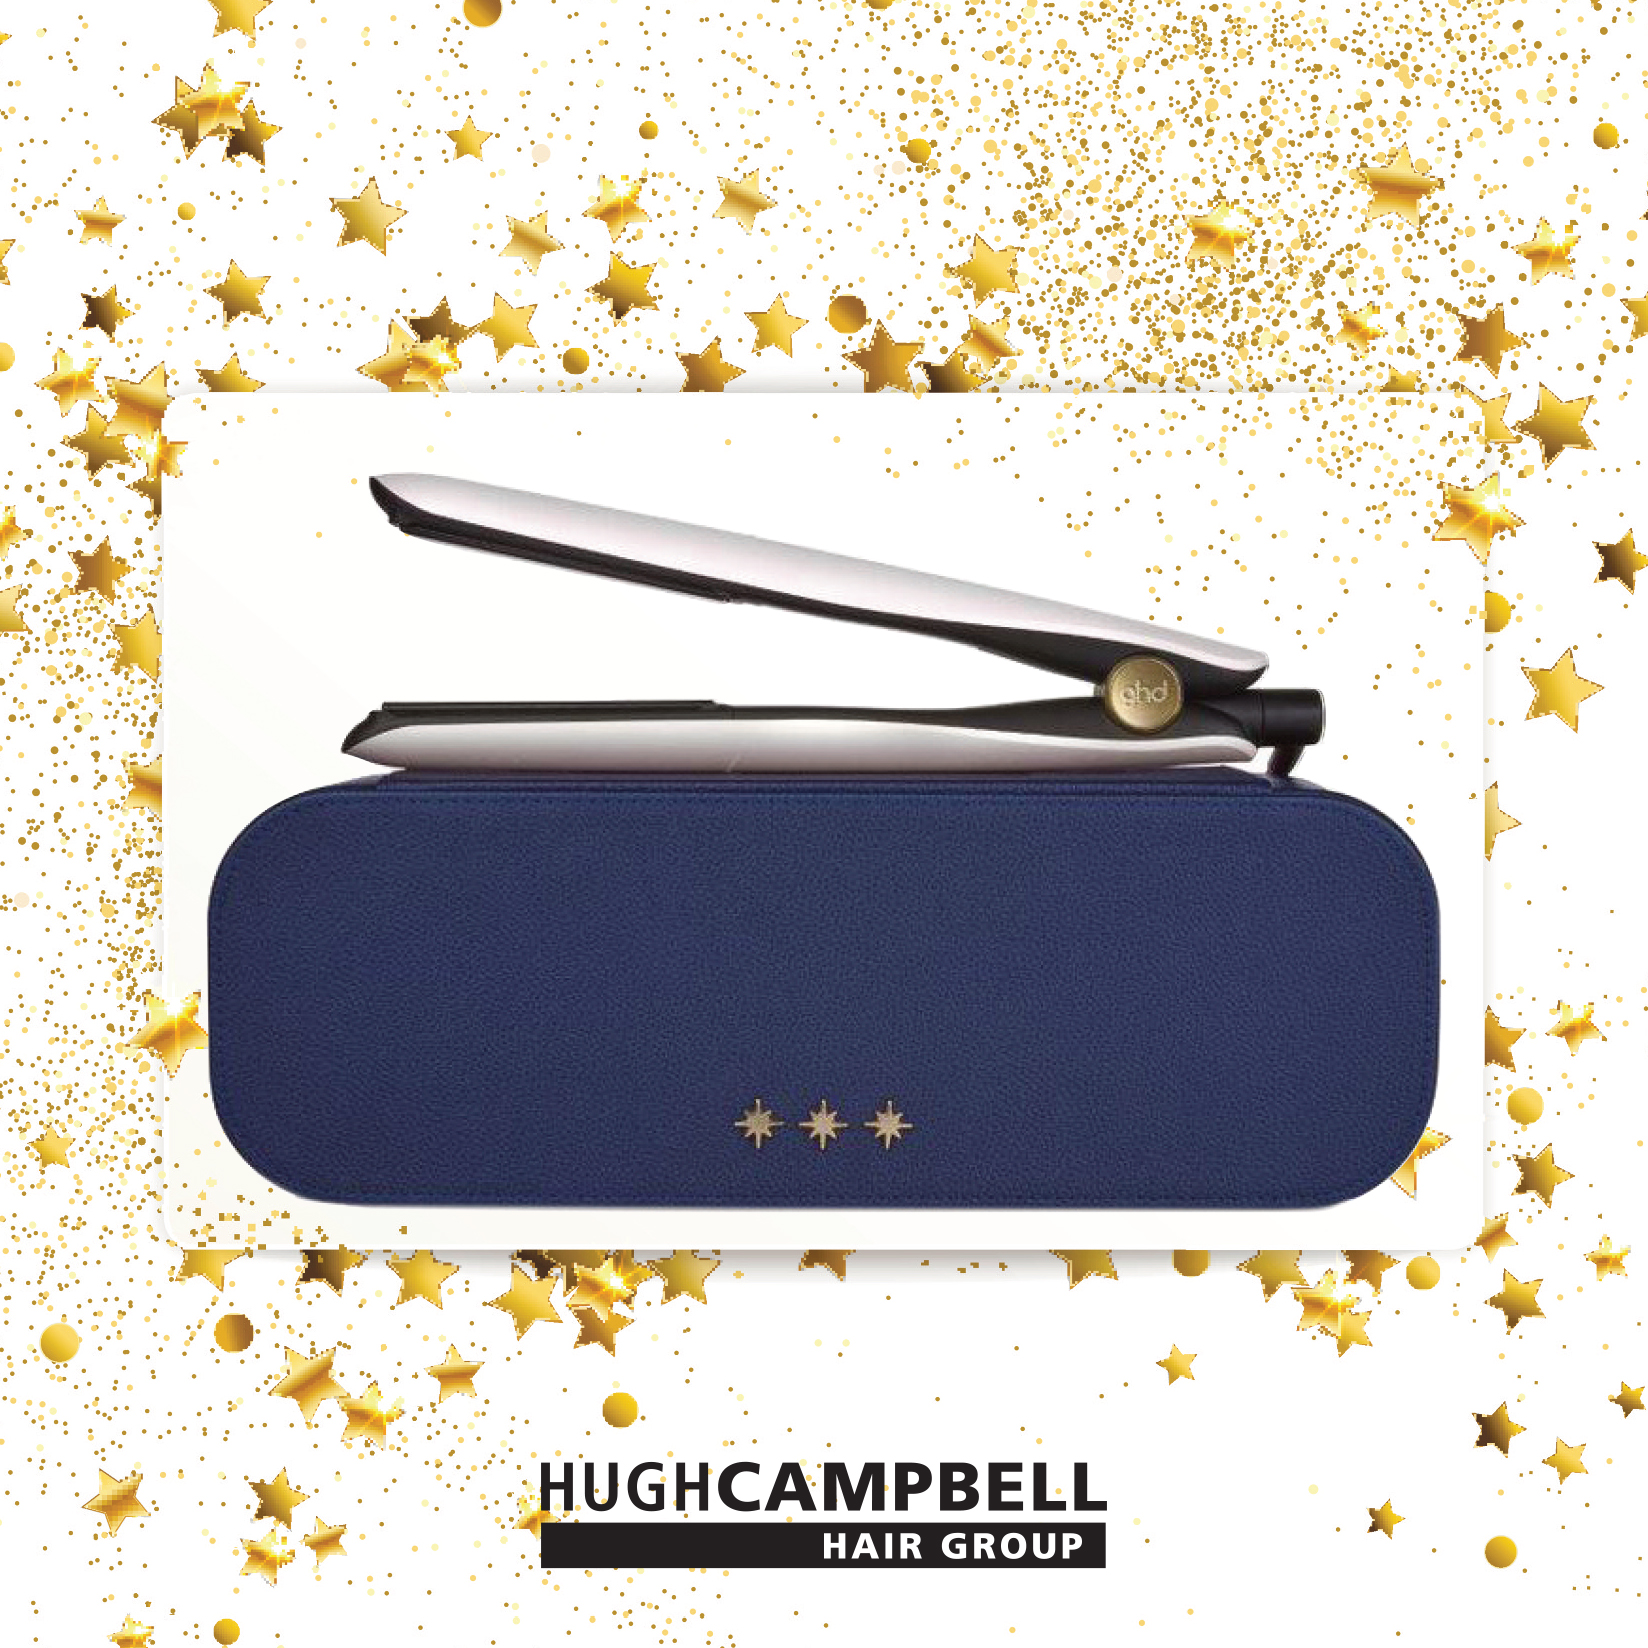 ghd gold christmas gift set 2020 available online Hugh Campbell Hair Group